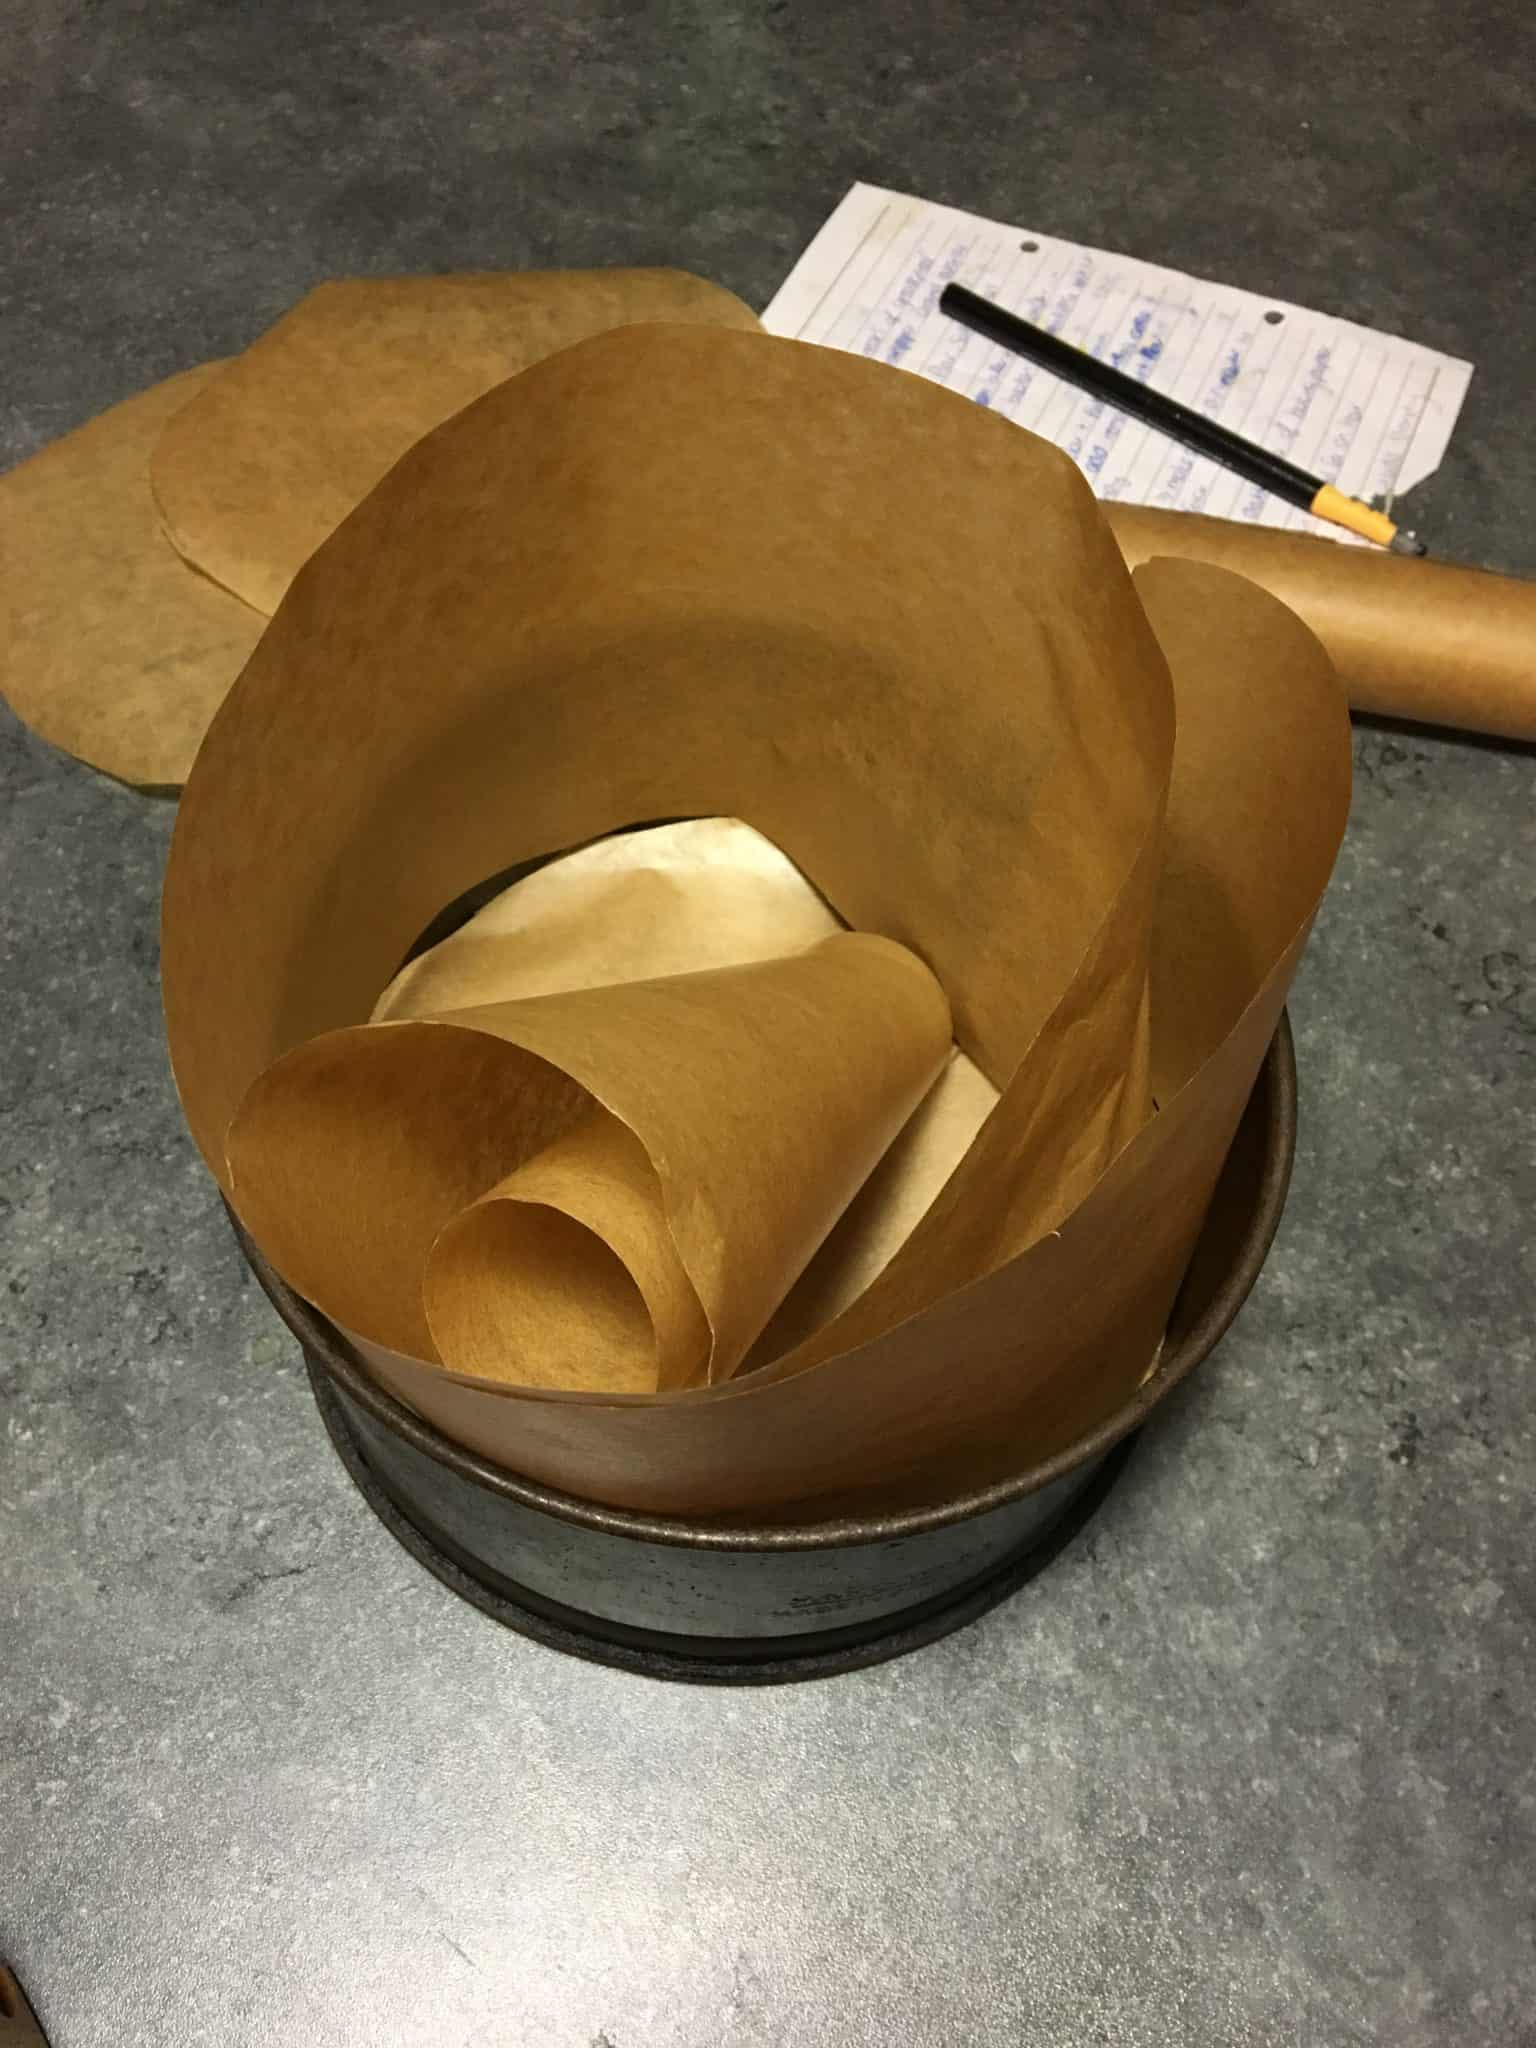 Lining the cake tin with greaseproof paper